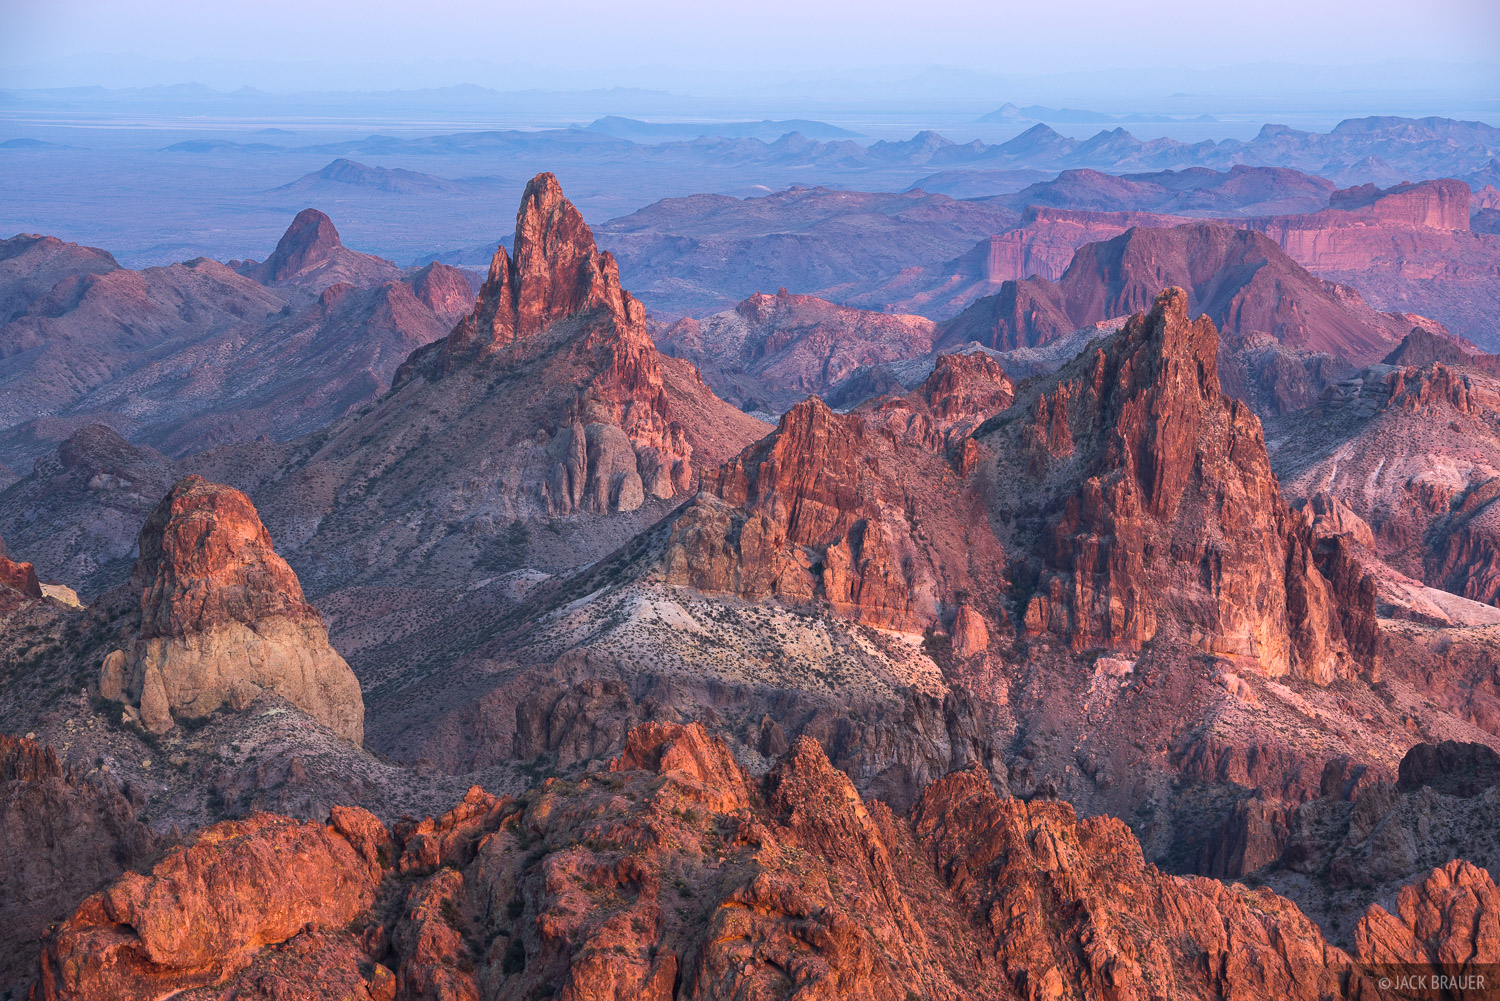 Arizona, Kofa National Wildlife Refuge, Signal Peak, Squaw Peak, Kofa Mountains, photo